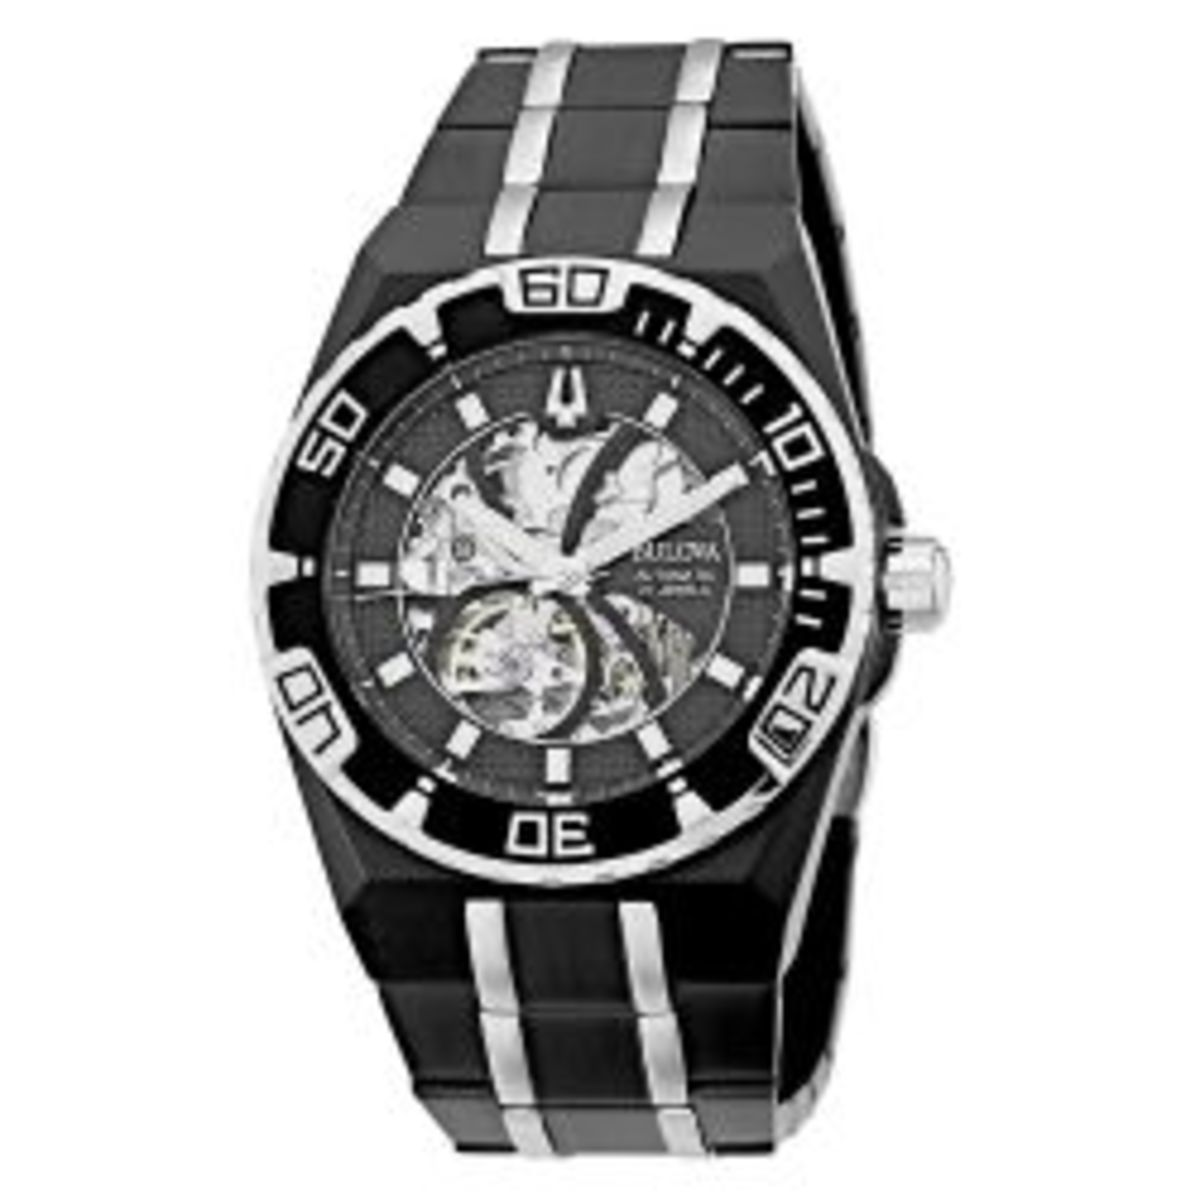 Bulova Marine Star Mechanical Hand-Wind Automatic.